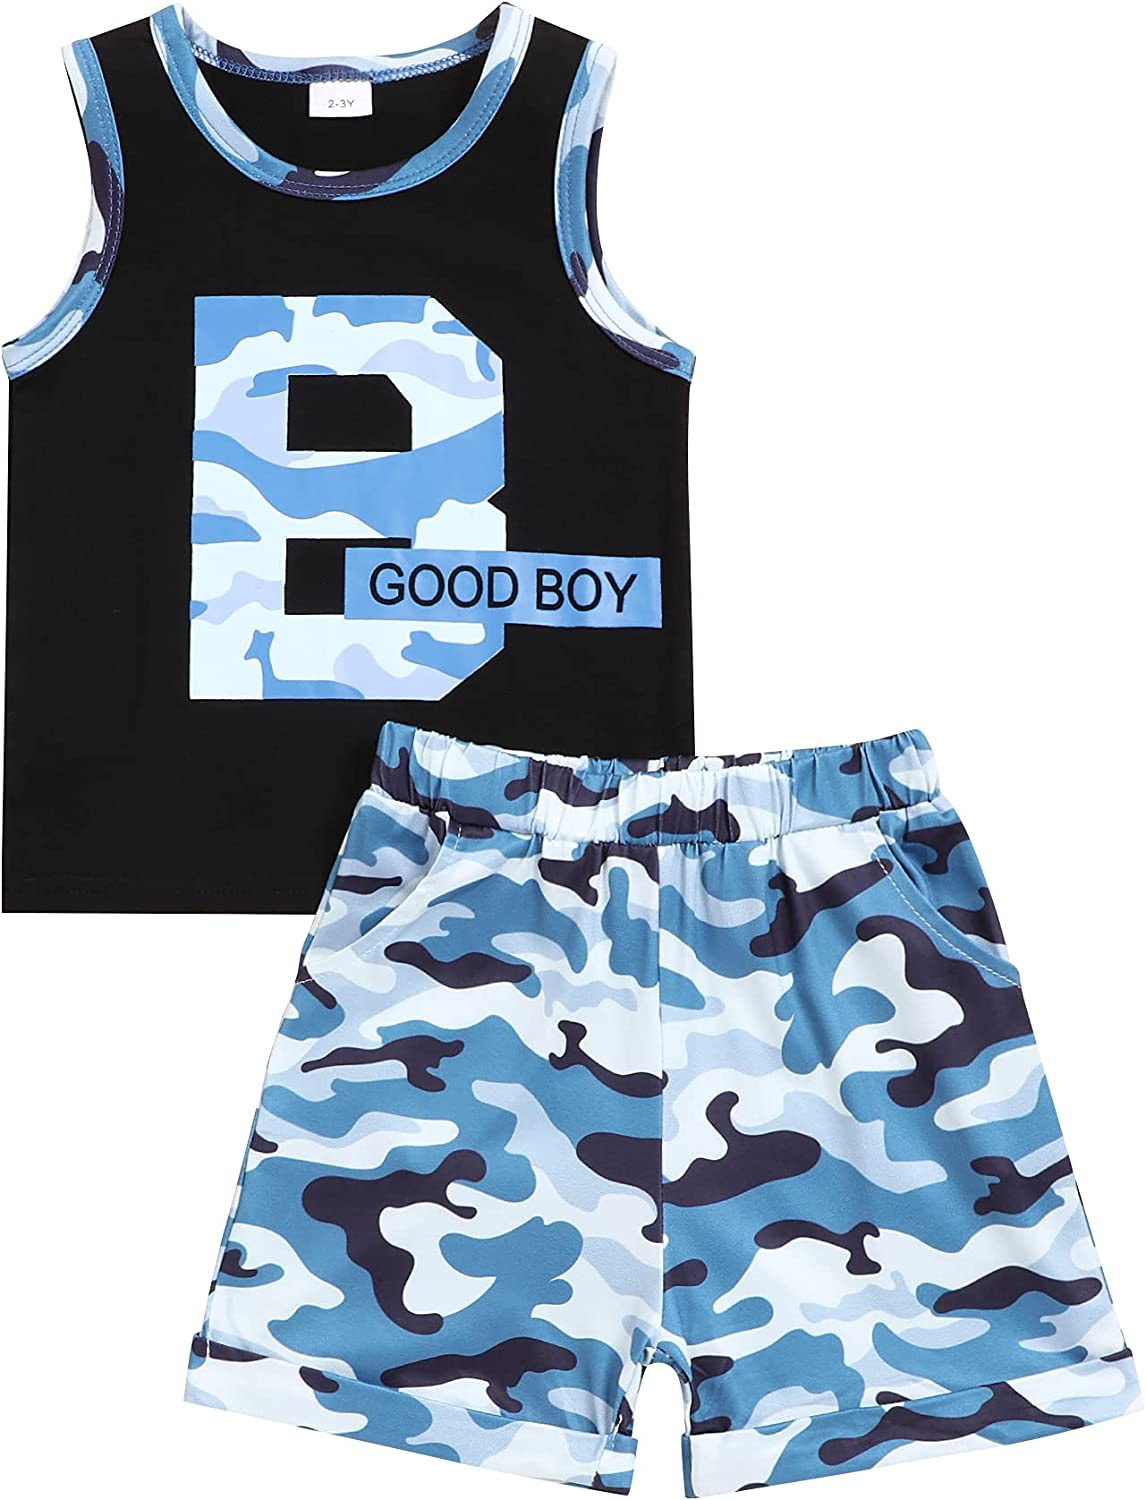 Toddler Baby Boys Summer Clothing Sets Cute Letters Print Tops Short Sleeeve T-Shirt+ Striped Shorts Outfits 2Pcs